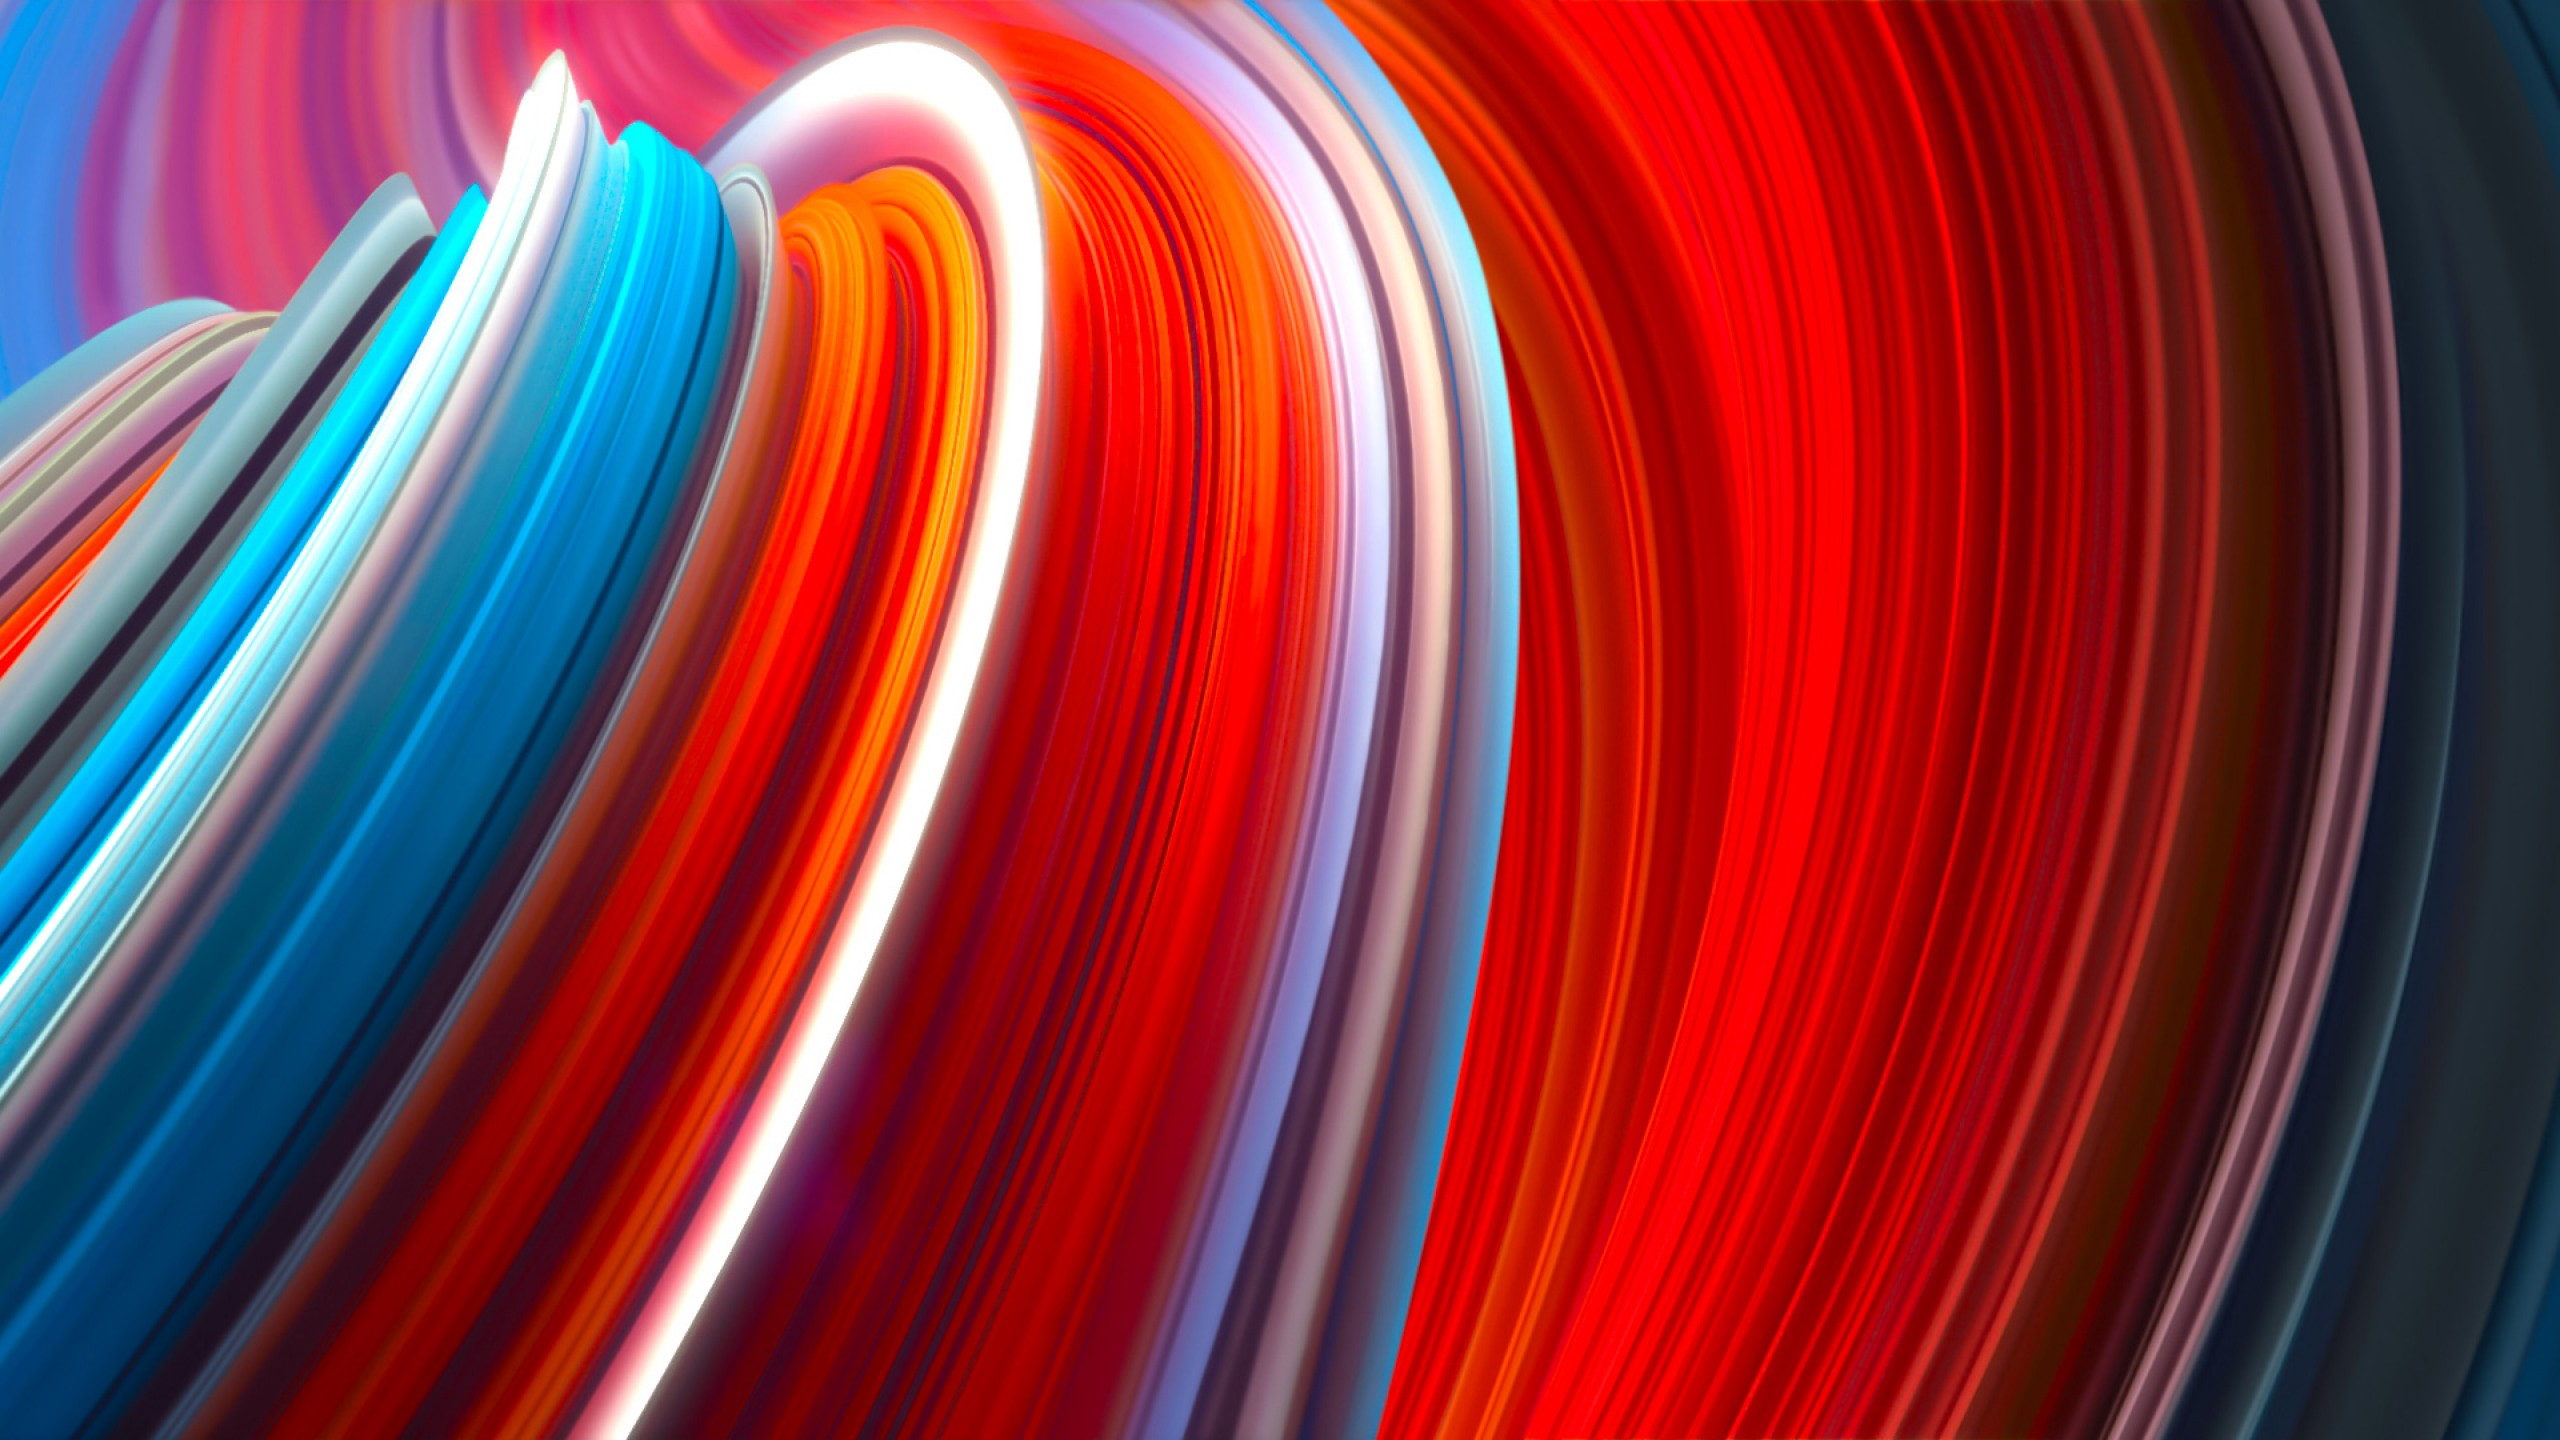 Wallpaper Xiaomi Mi Mix 3 Abstract Colorful Os 20775